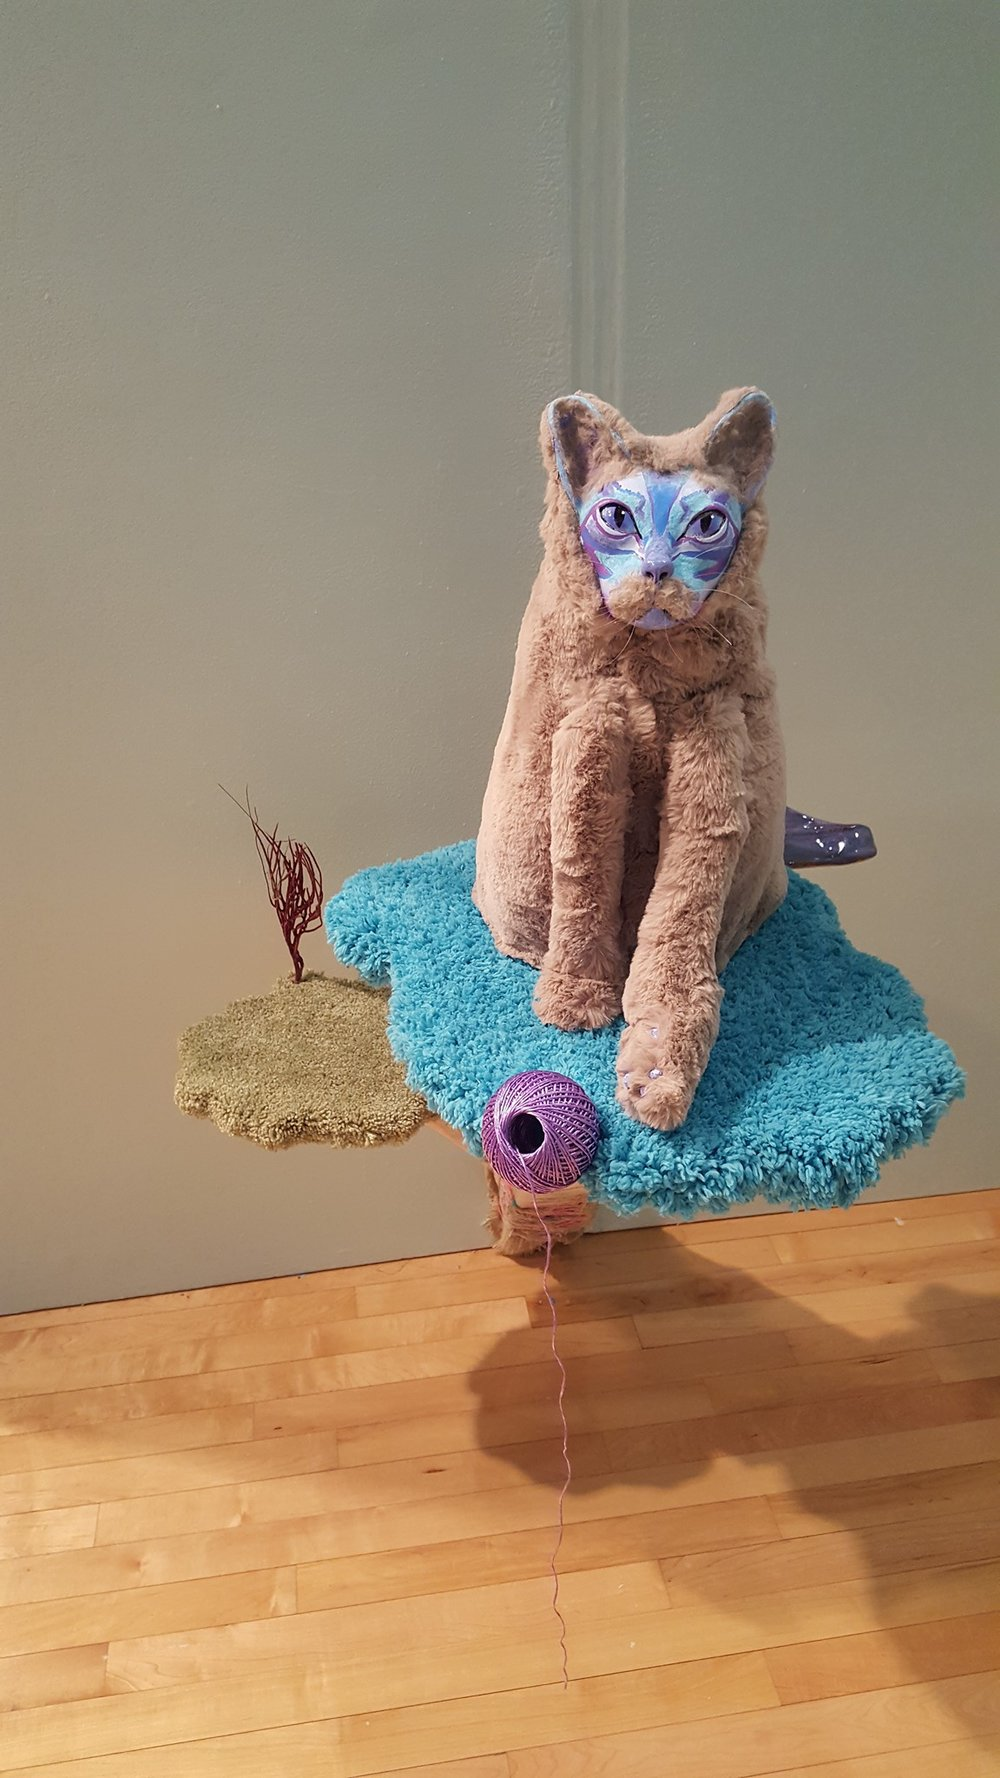 """Brat"" by Allison Schwarts, Ceramic, expanding foam, faux fur, acrylic paint, wood, flocking, 15x16x17.5in, 2017, $500 (base not included)"